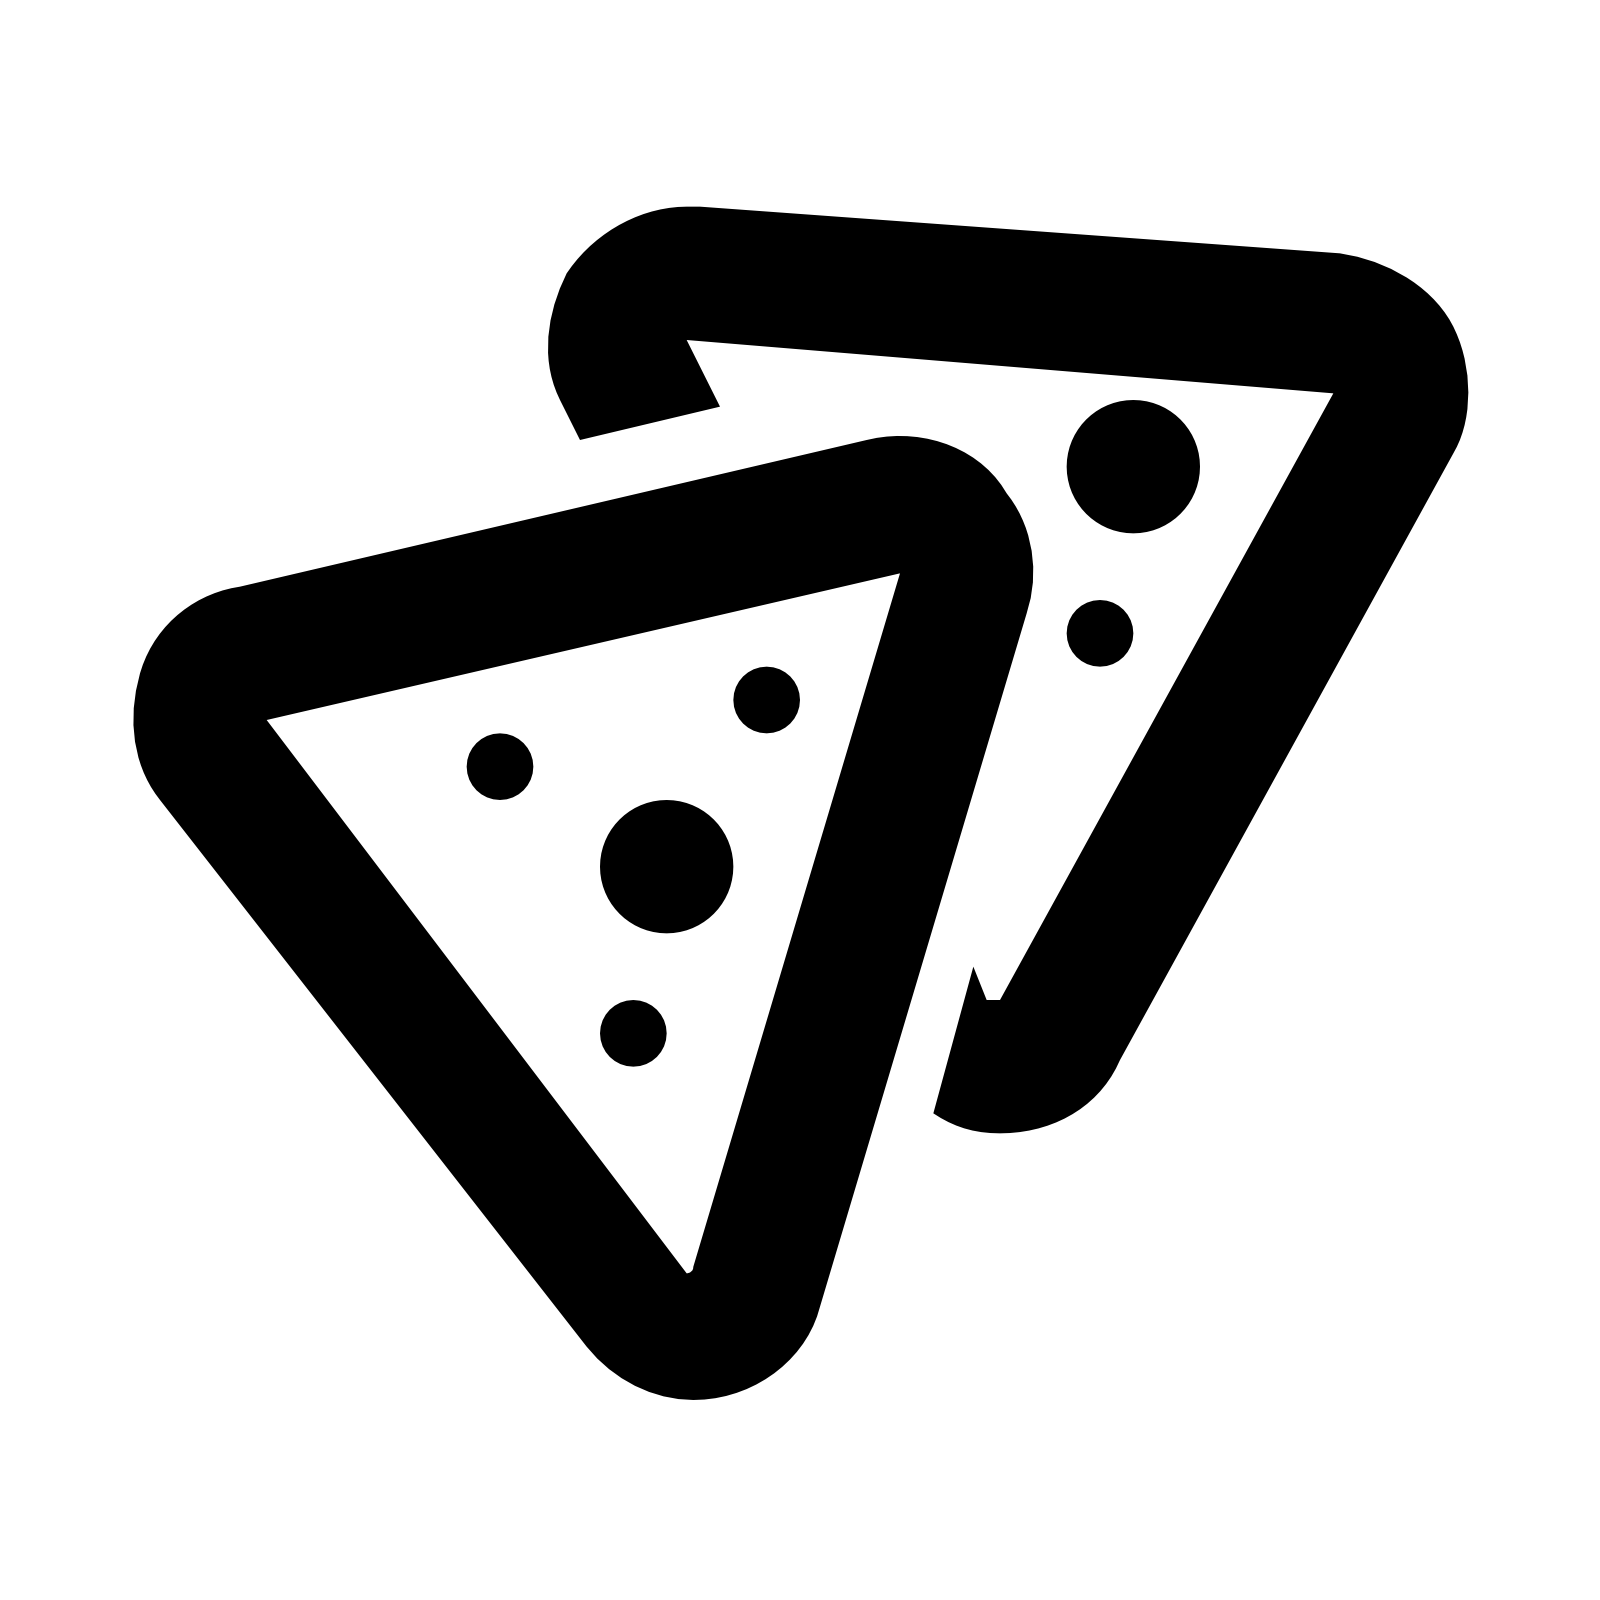 Nachos icon free png. And cheese transparent images